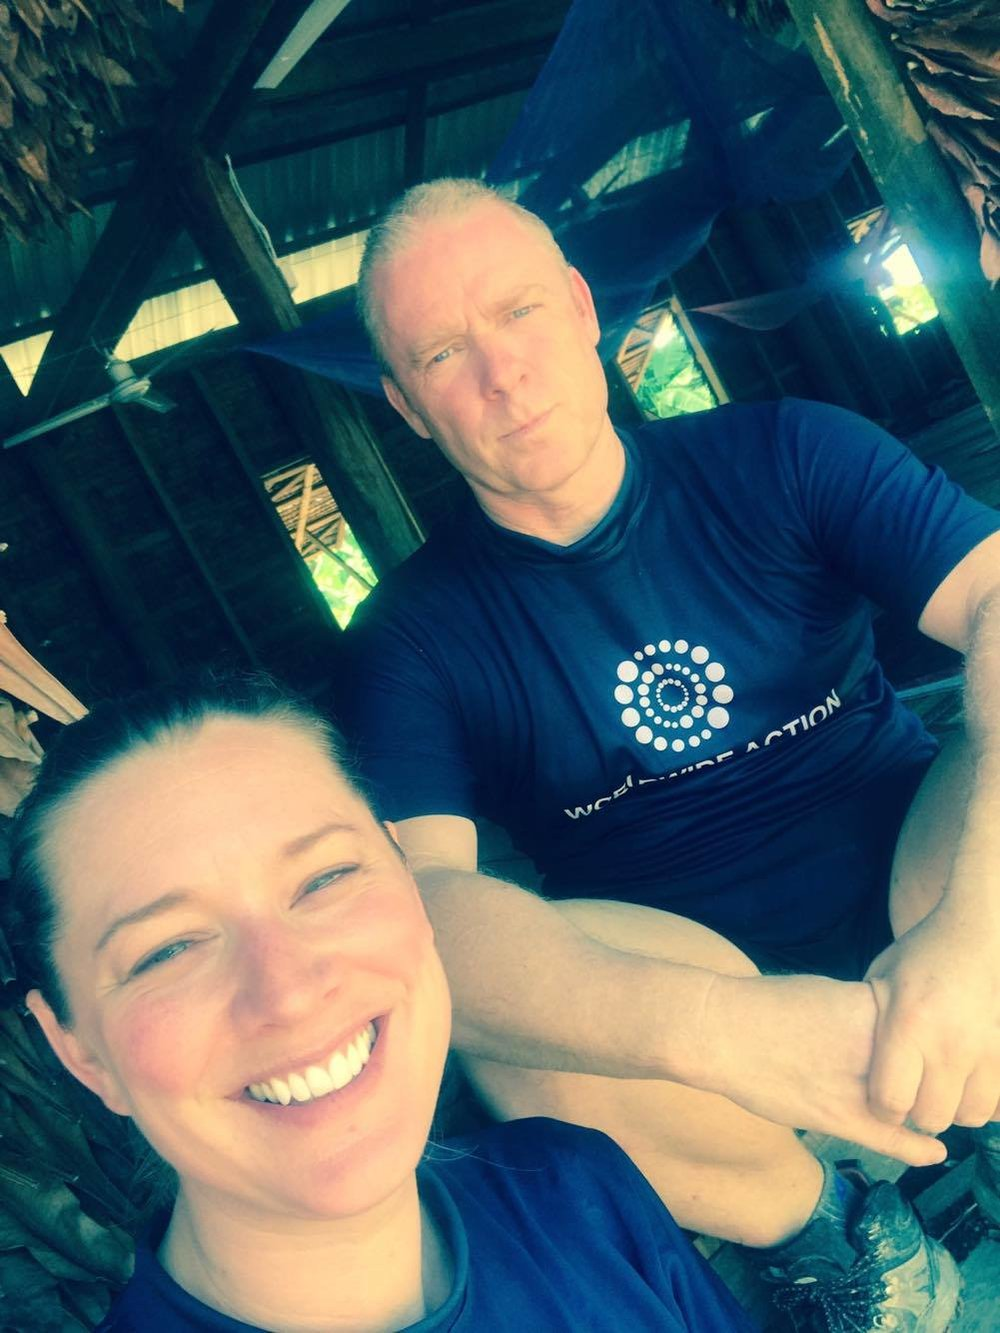 Laura was inspired to volunteer by Graeme, her cousin and the founder of the charity